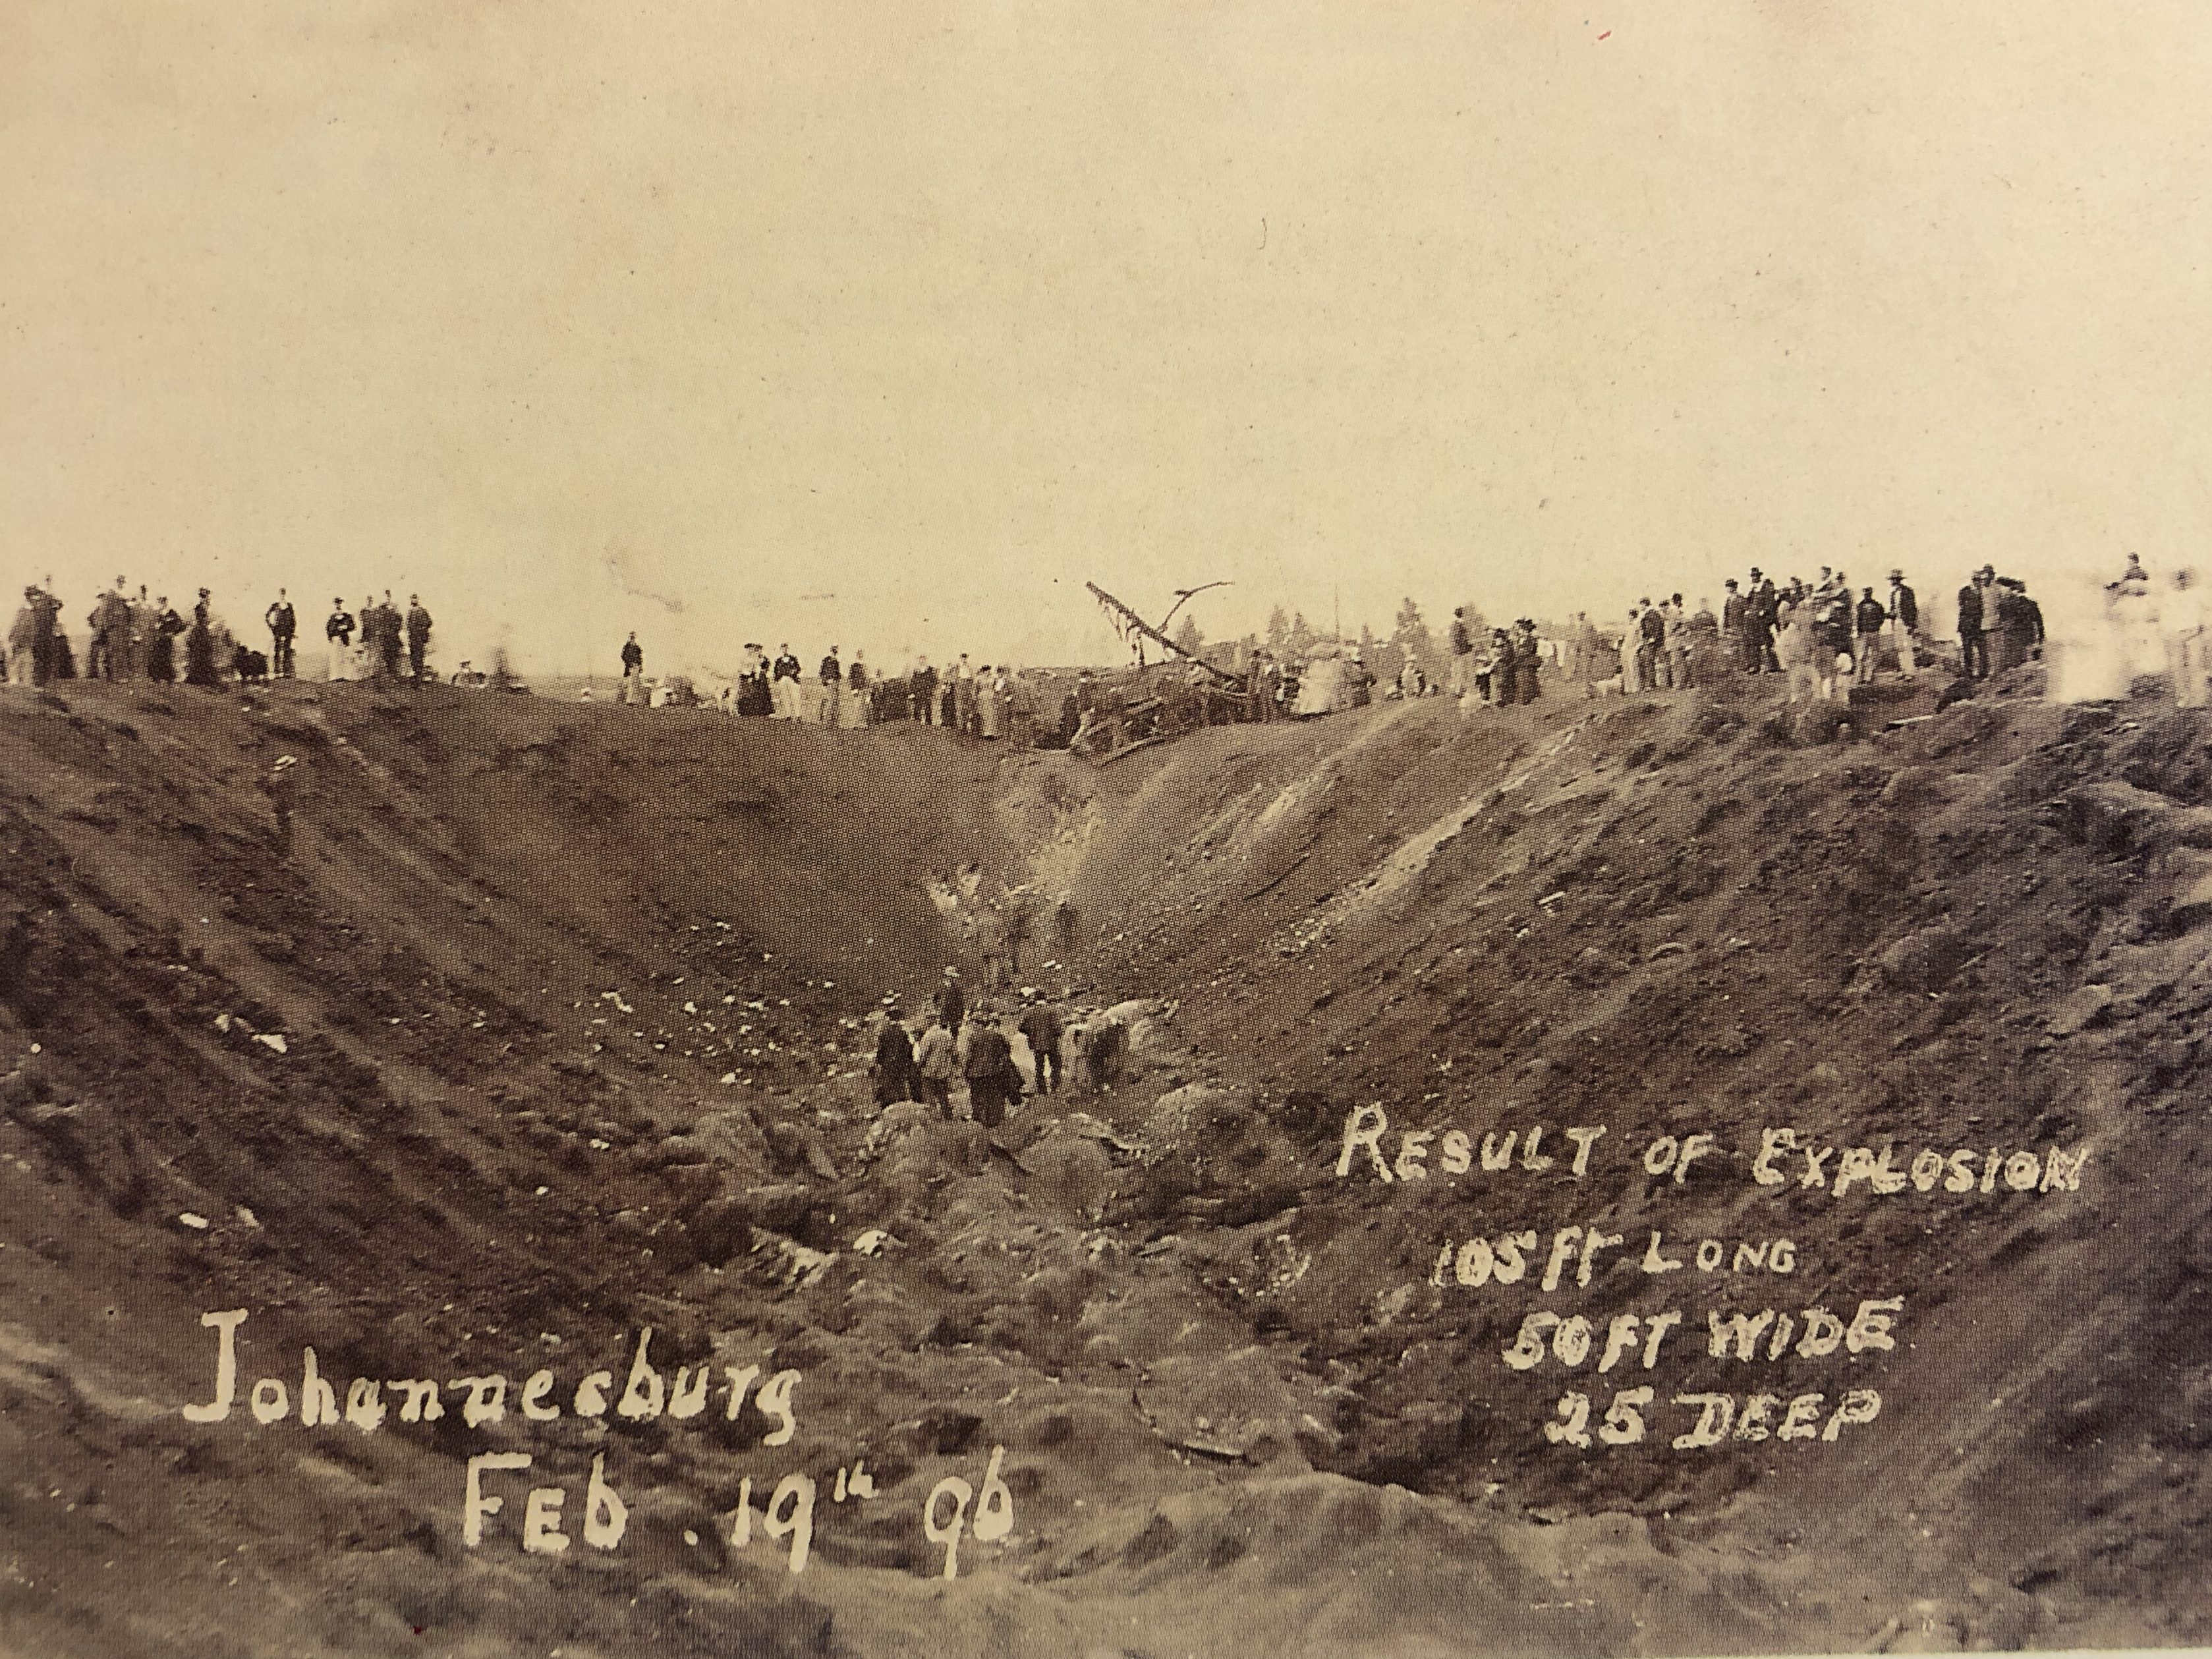 Dynamite explosion crater